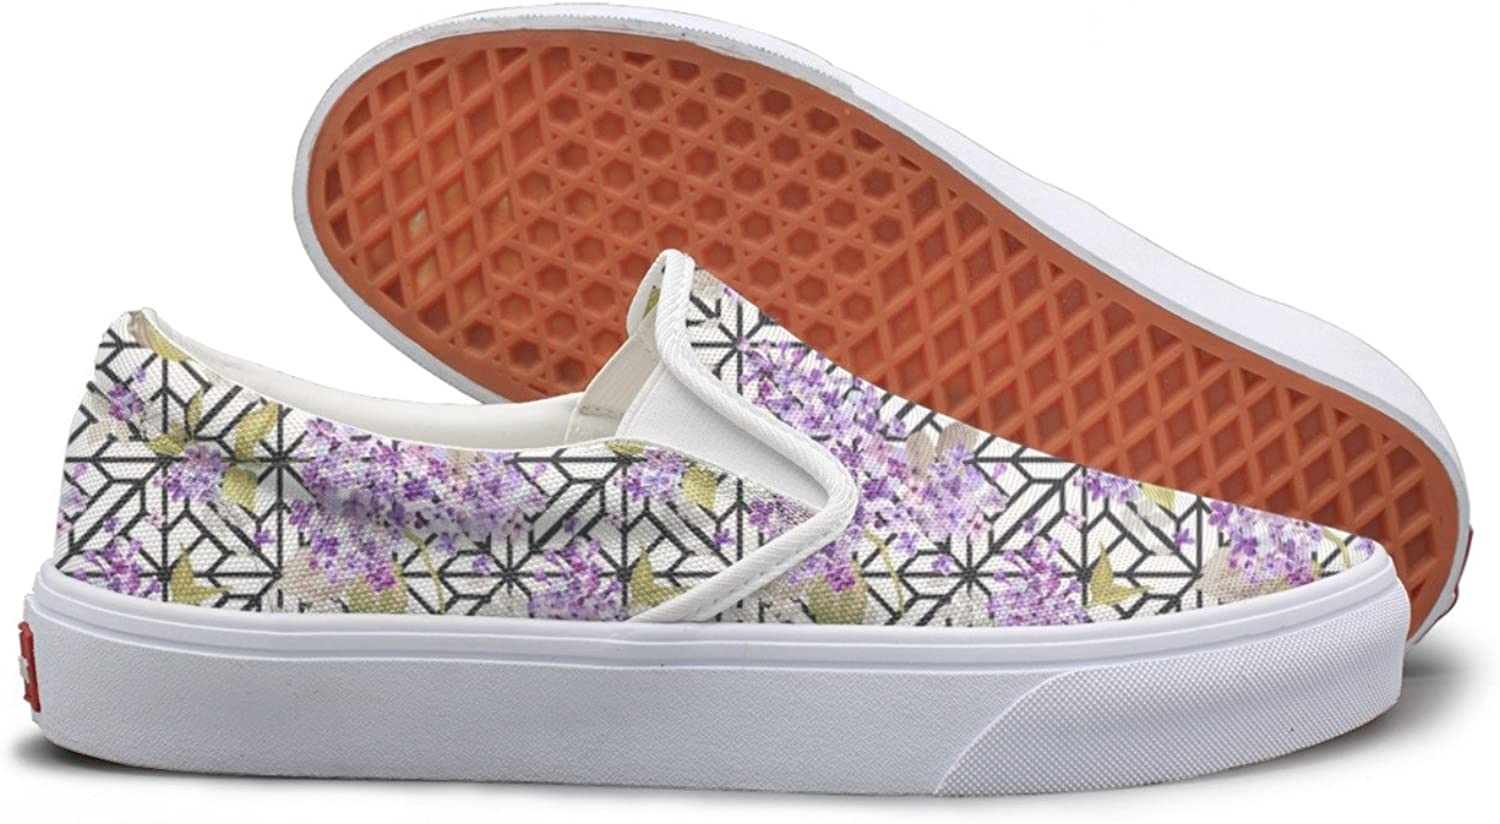 SEERTED Purple Wisteria Plant Top Sneakers for Women